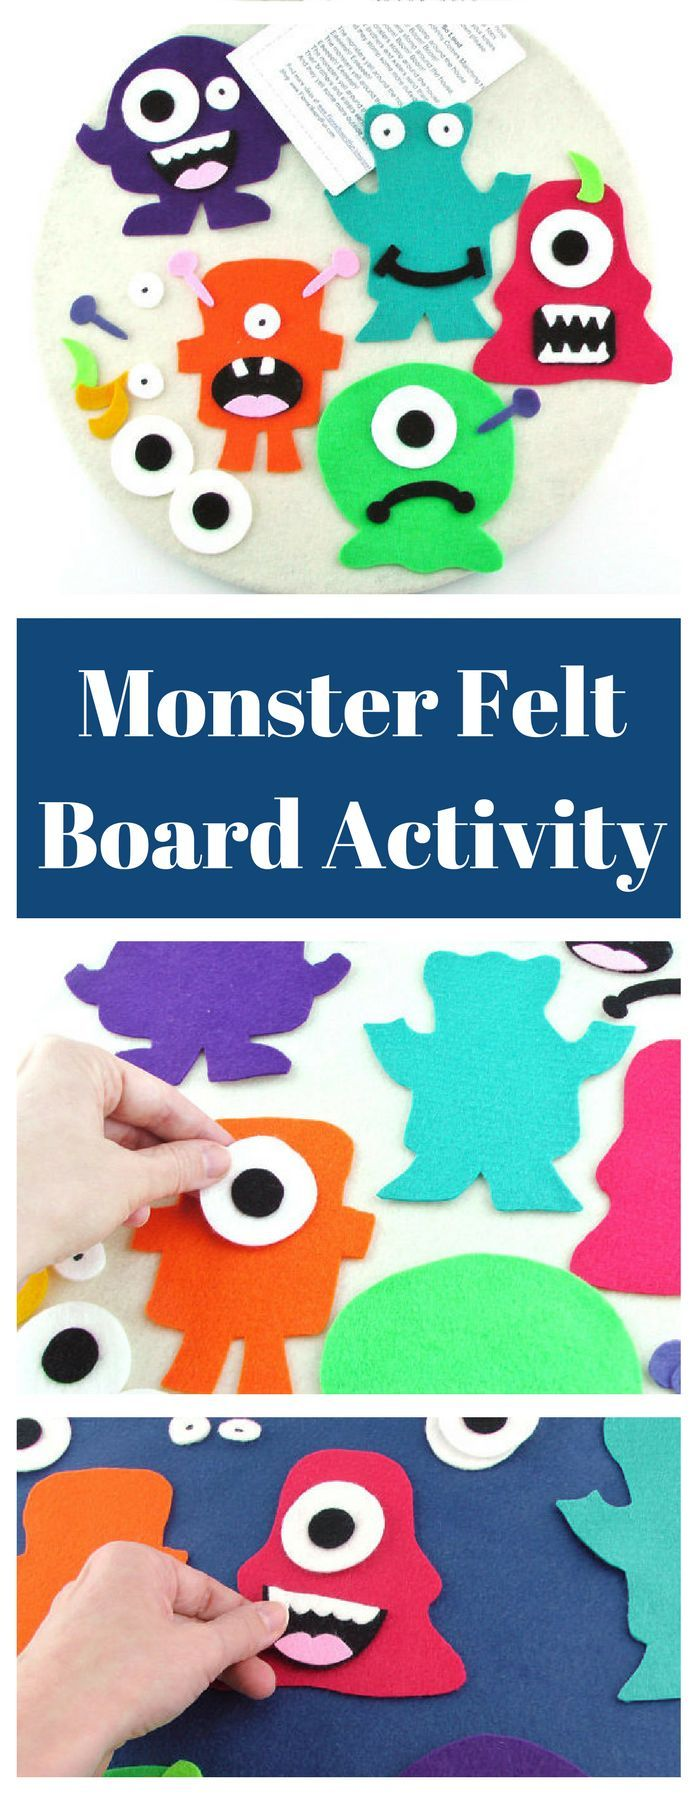 My son will love this! What a great way to laugh at monsters! #kids #ad